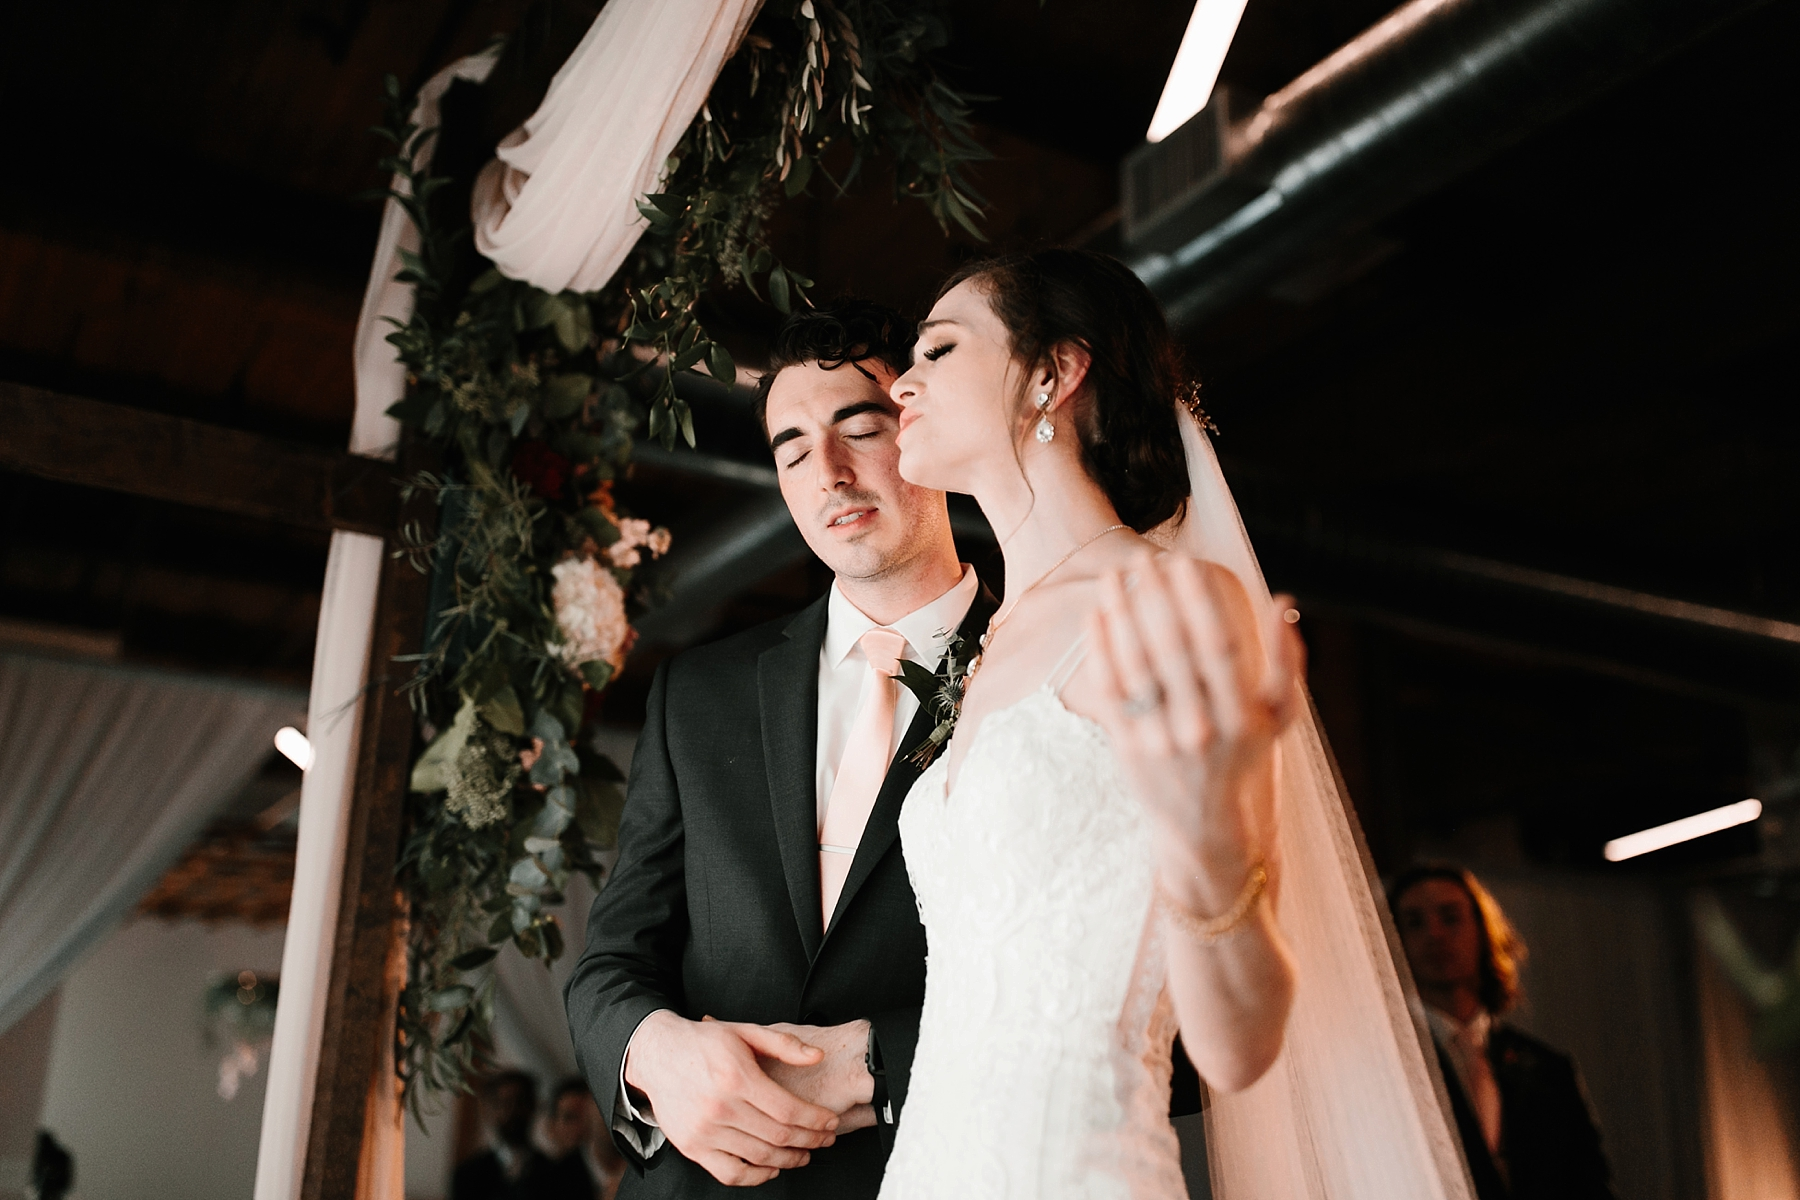 Emily + Caleb _ an elegant, intentional, industrial style wedding with navy + gold accents at 6500 in Dallas, TX by North Texas Wedding Photographer Rachel Meagan Photography _ 094